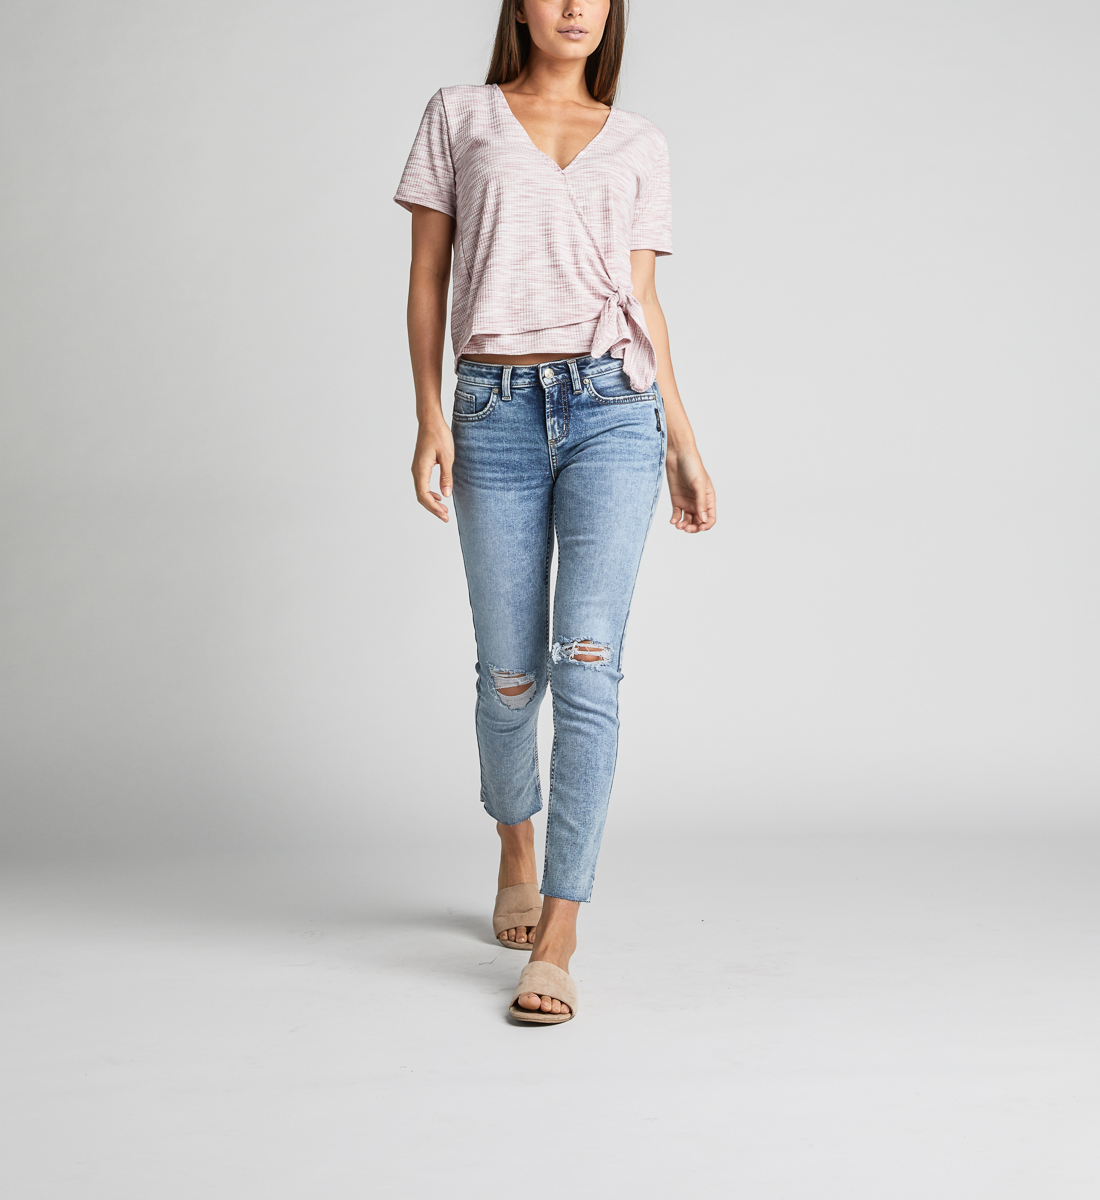 Adrea Side-Tie Space-Dyed Wrap Tee,Dark Rose Back